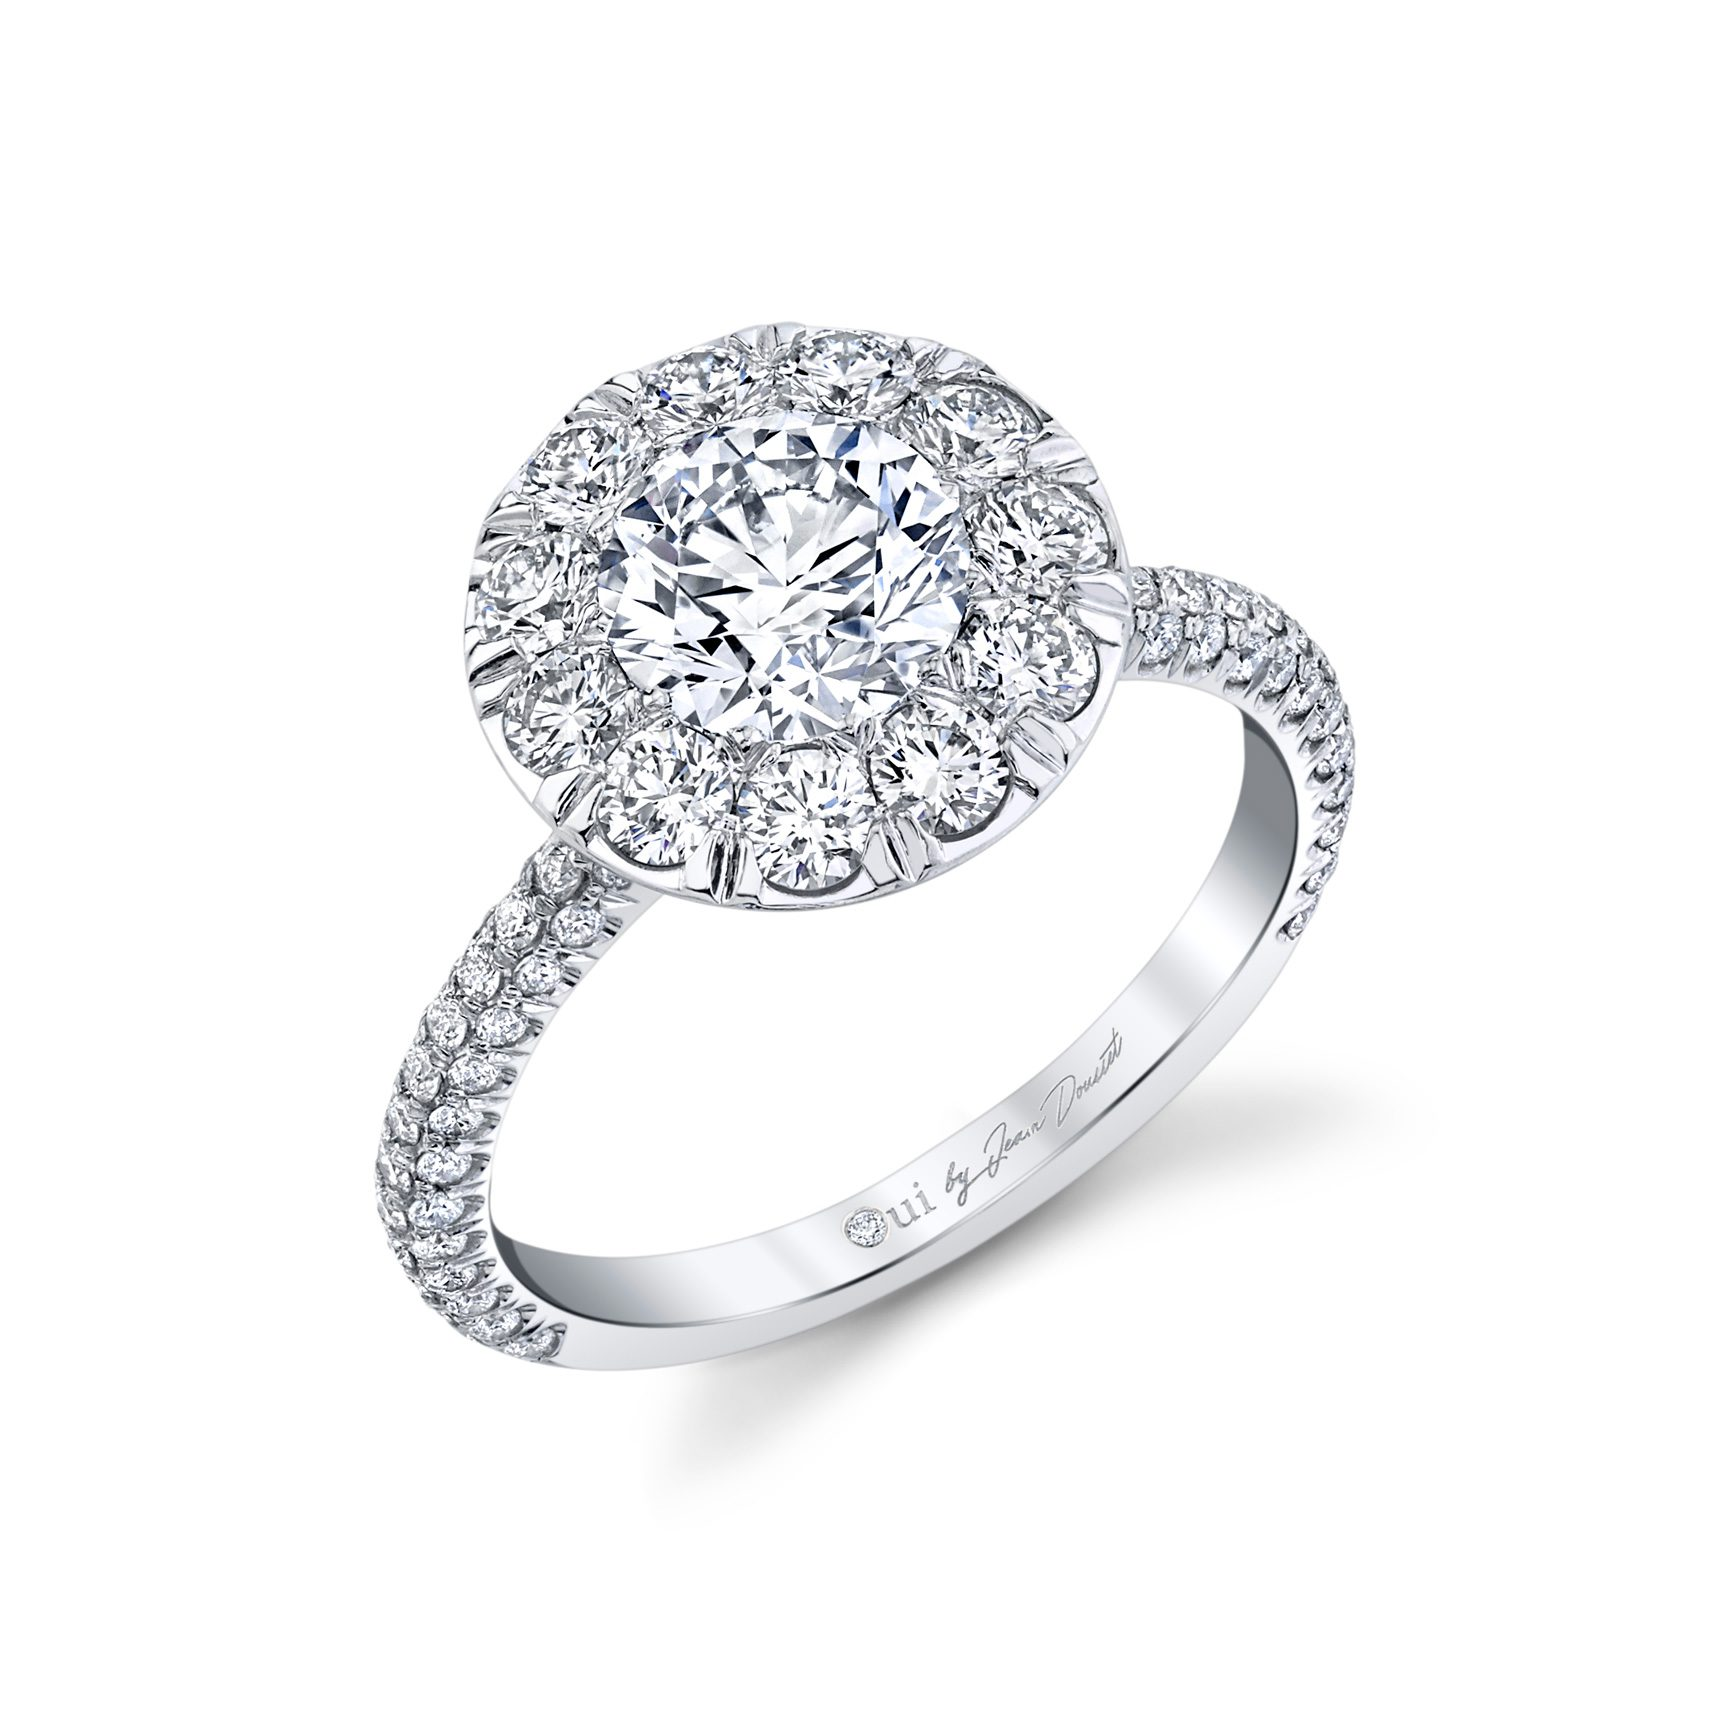 Jacqueline Round Brilliant Seamless Solitaire® Engagement Ring 18k White Gold Profile View by Oui by Jean Dousset